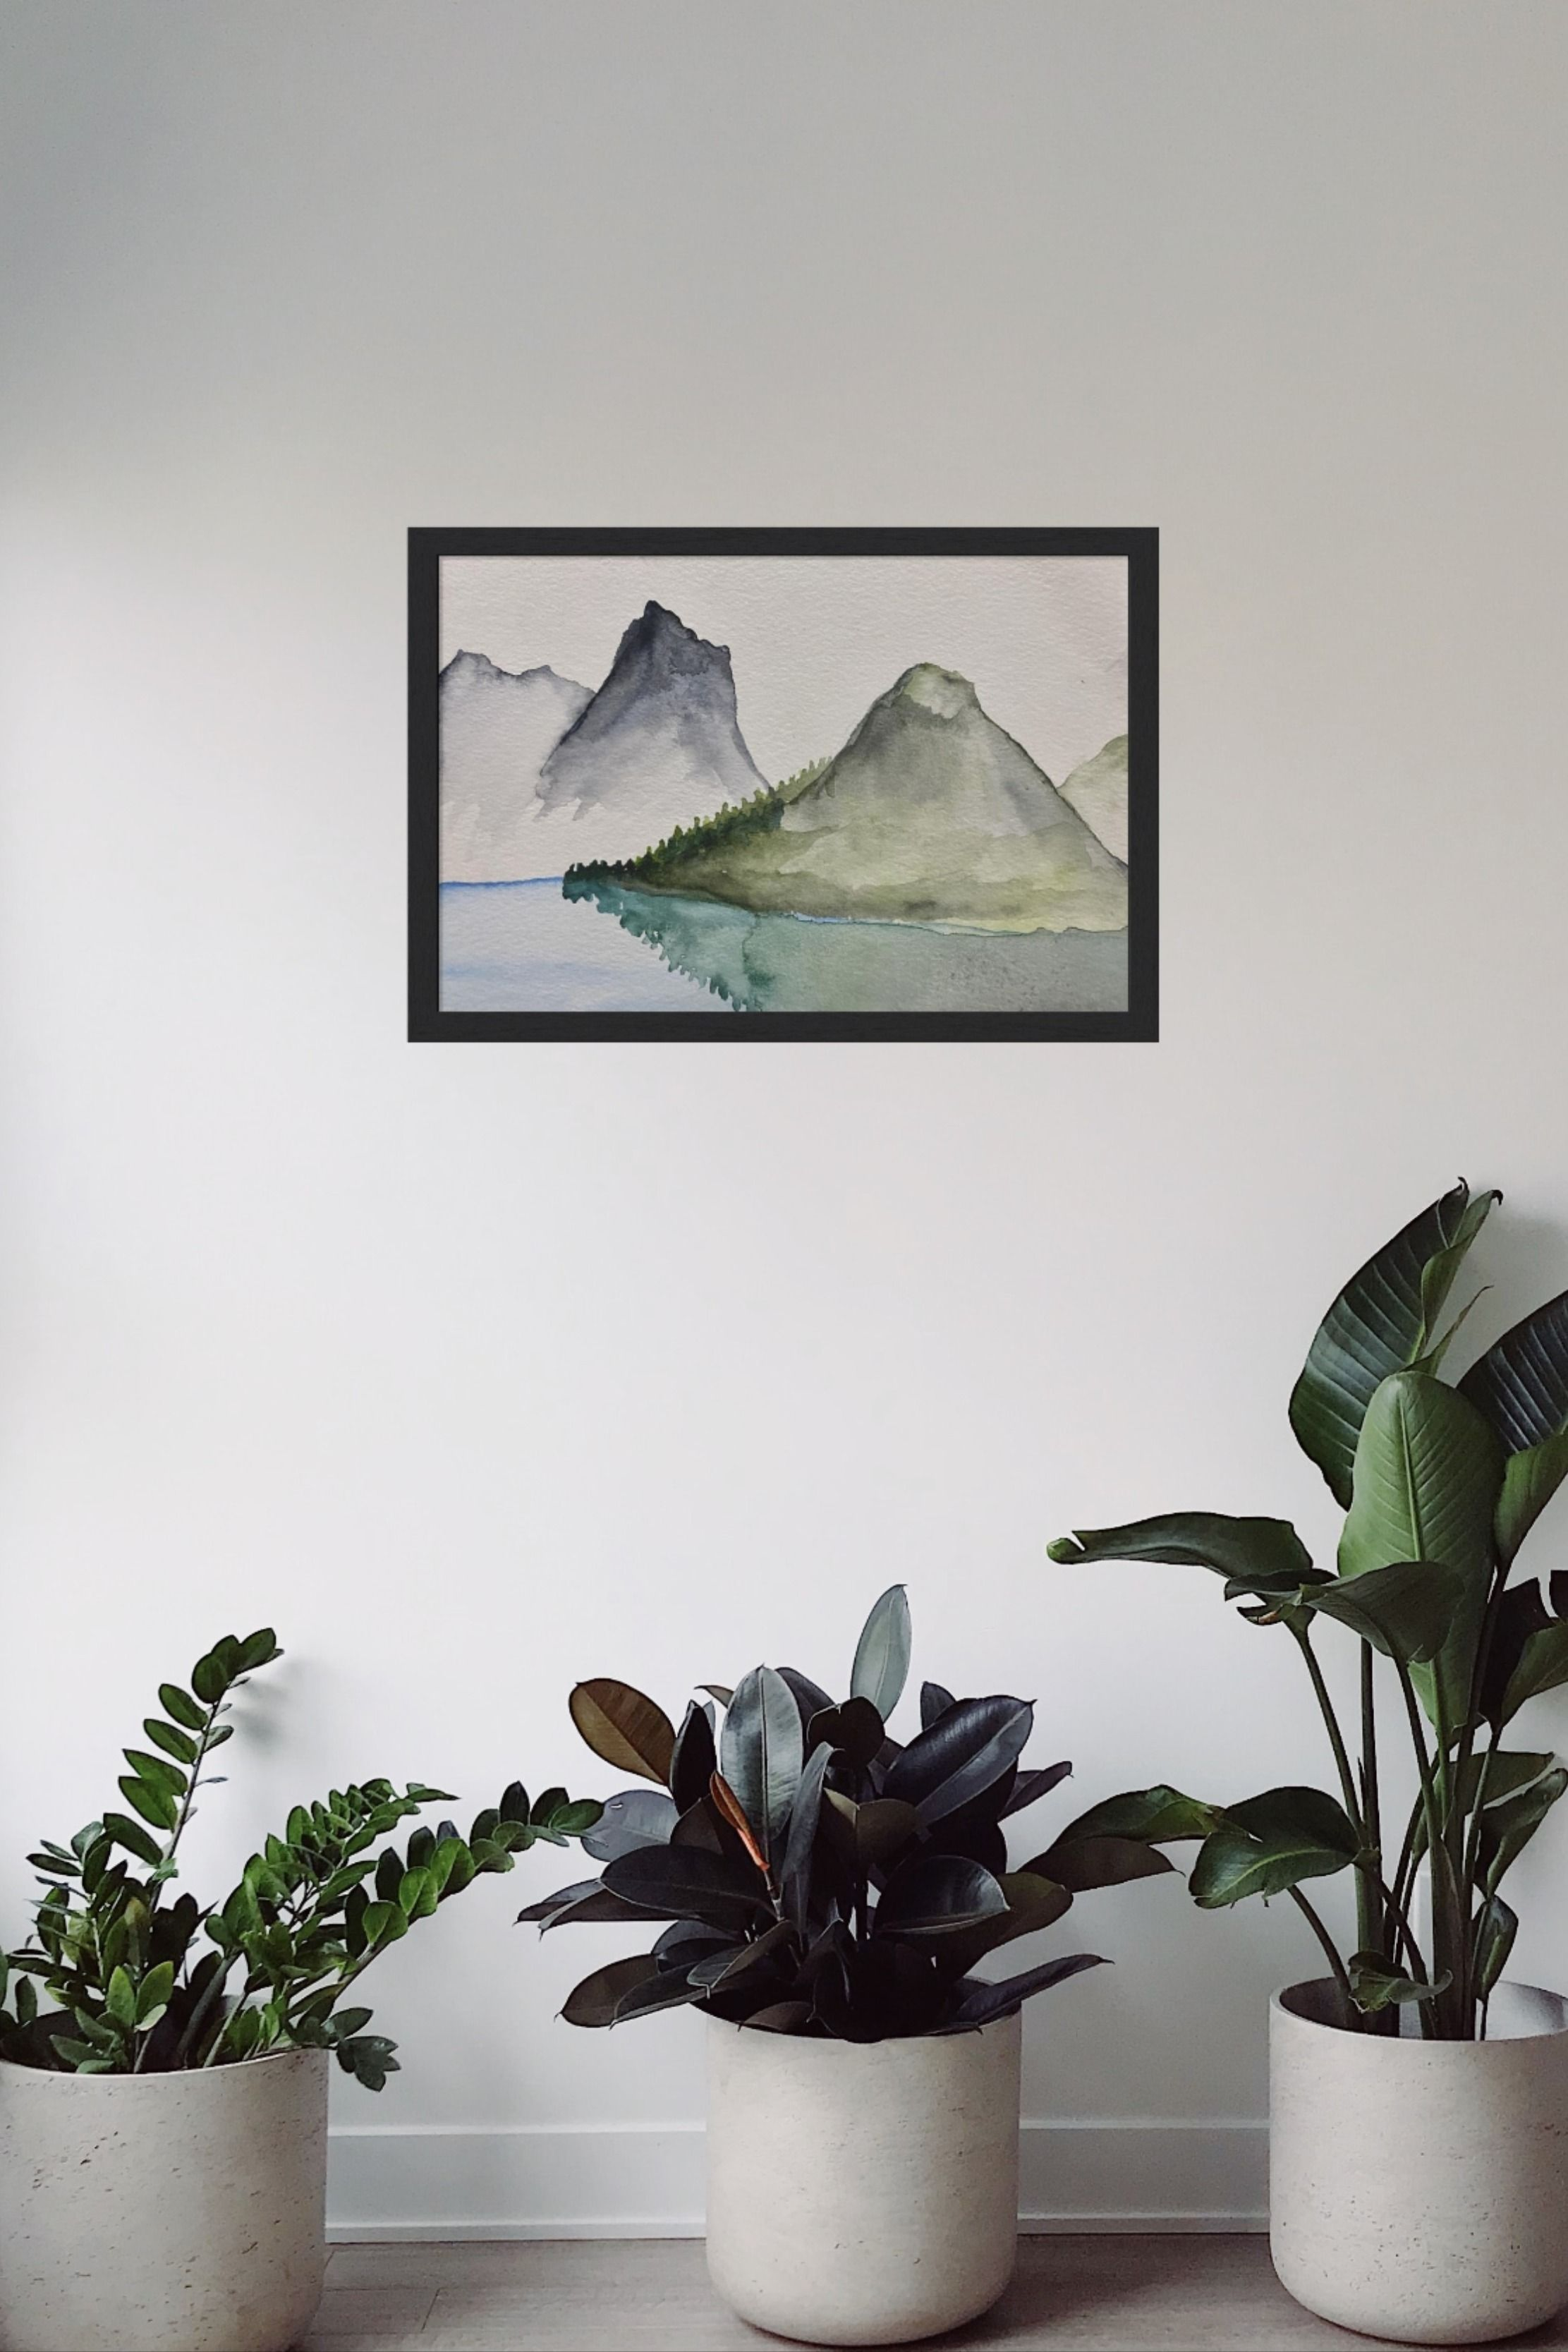 This peaceful watercolor of mountains highlights beauty in the simple scenery of the outdoors. The nature design fits well with many home decor styles. I love the clean lines and graceful watercolor transitions. This beautiful mountain scene wall art will elevate any space.   Click through to find out more!   #mountainart #wallart #modernart #simplehomedecor #livingroomart #mountains #natureart #watercolor #modernprint #outdoorsart #naturewatercolor #etsy #timelessart #simpleandmodern